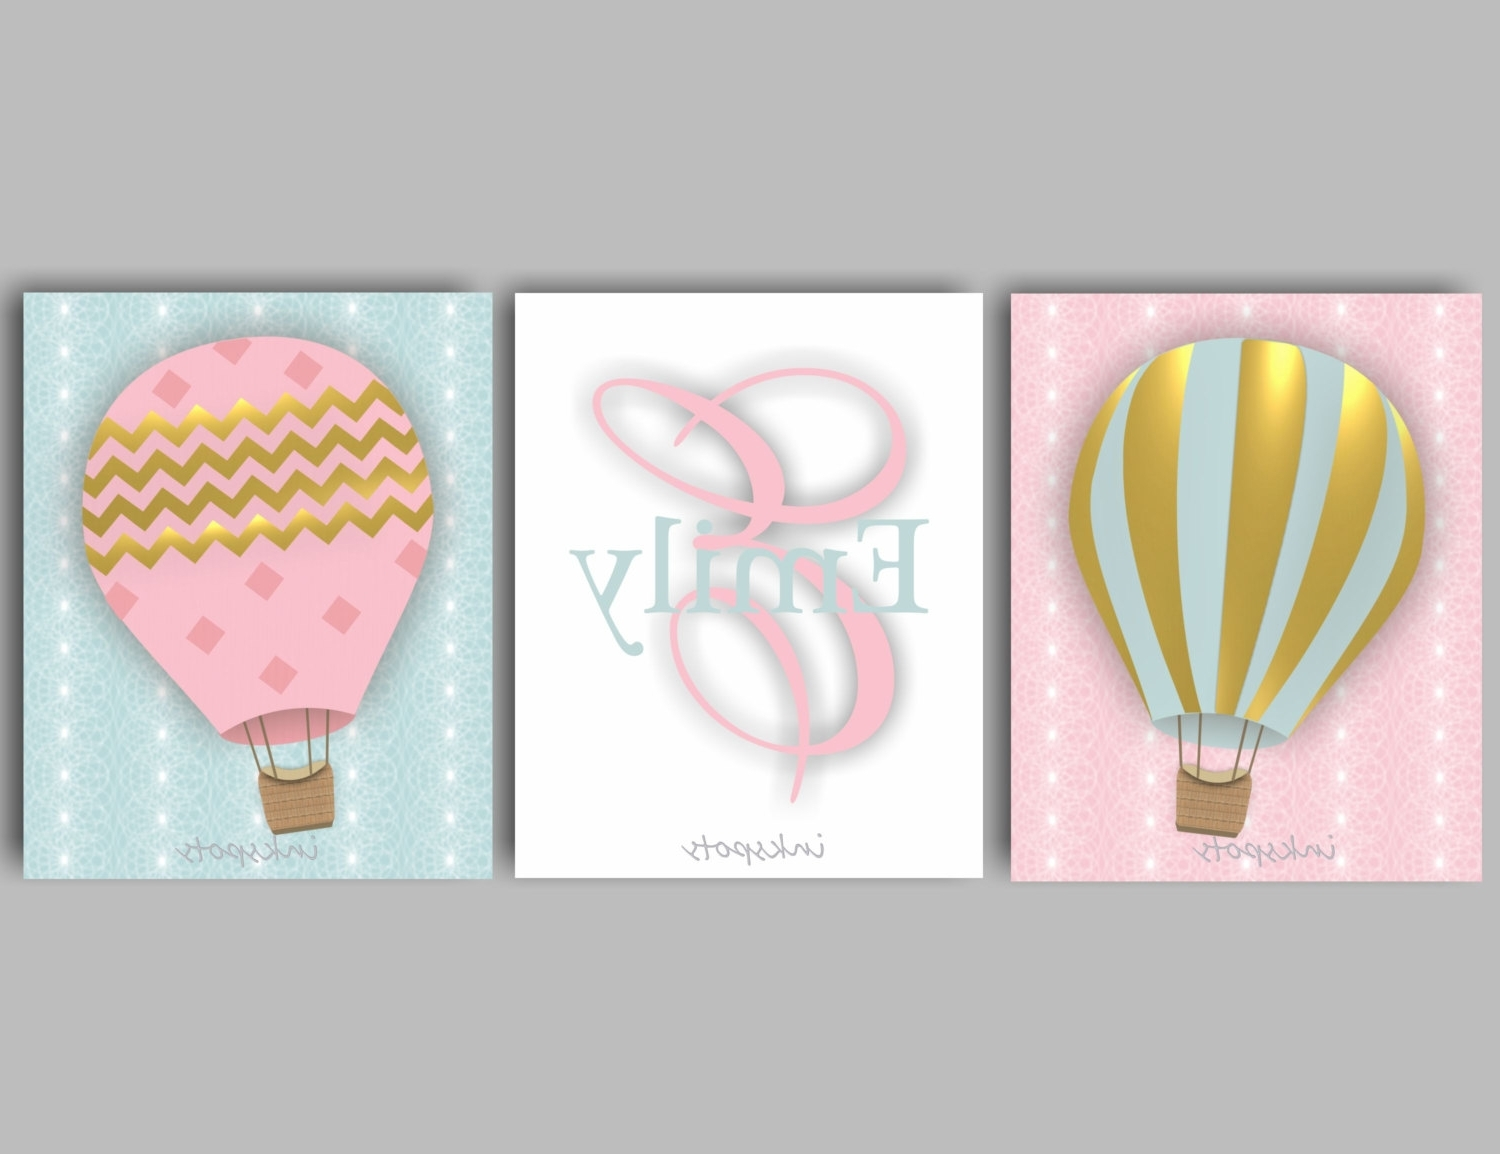 Air Balloon 3d Wall Art Regarding Newest Charming Inspiration Hot Air Balloon Wall Art 3d Metal Canvas (View 8 of 15)